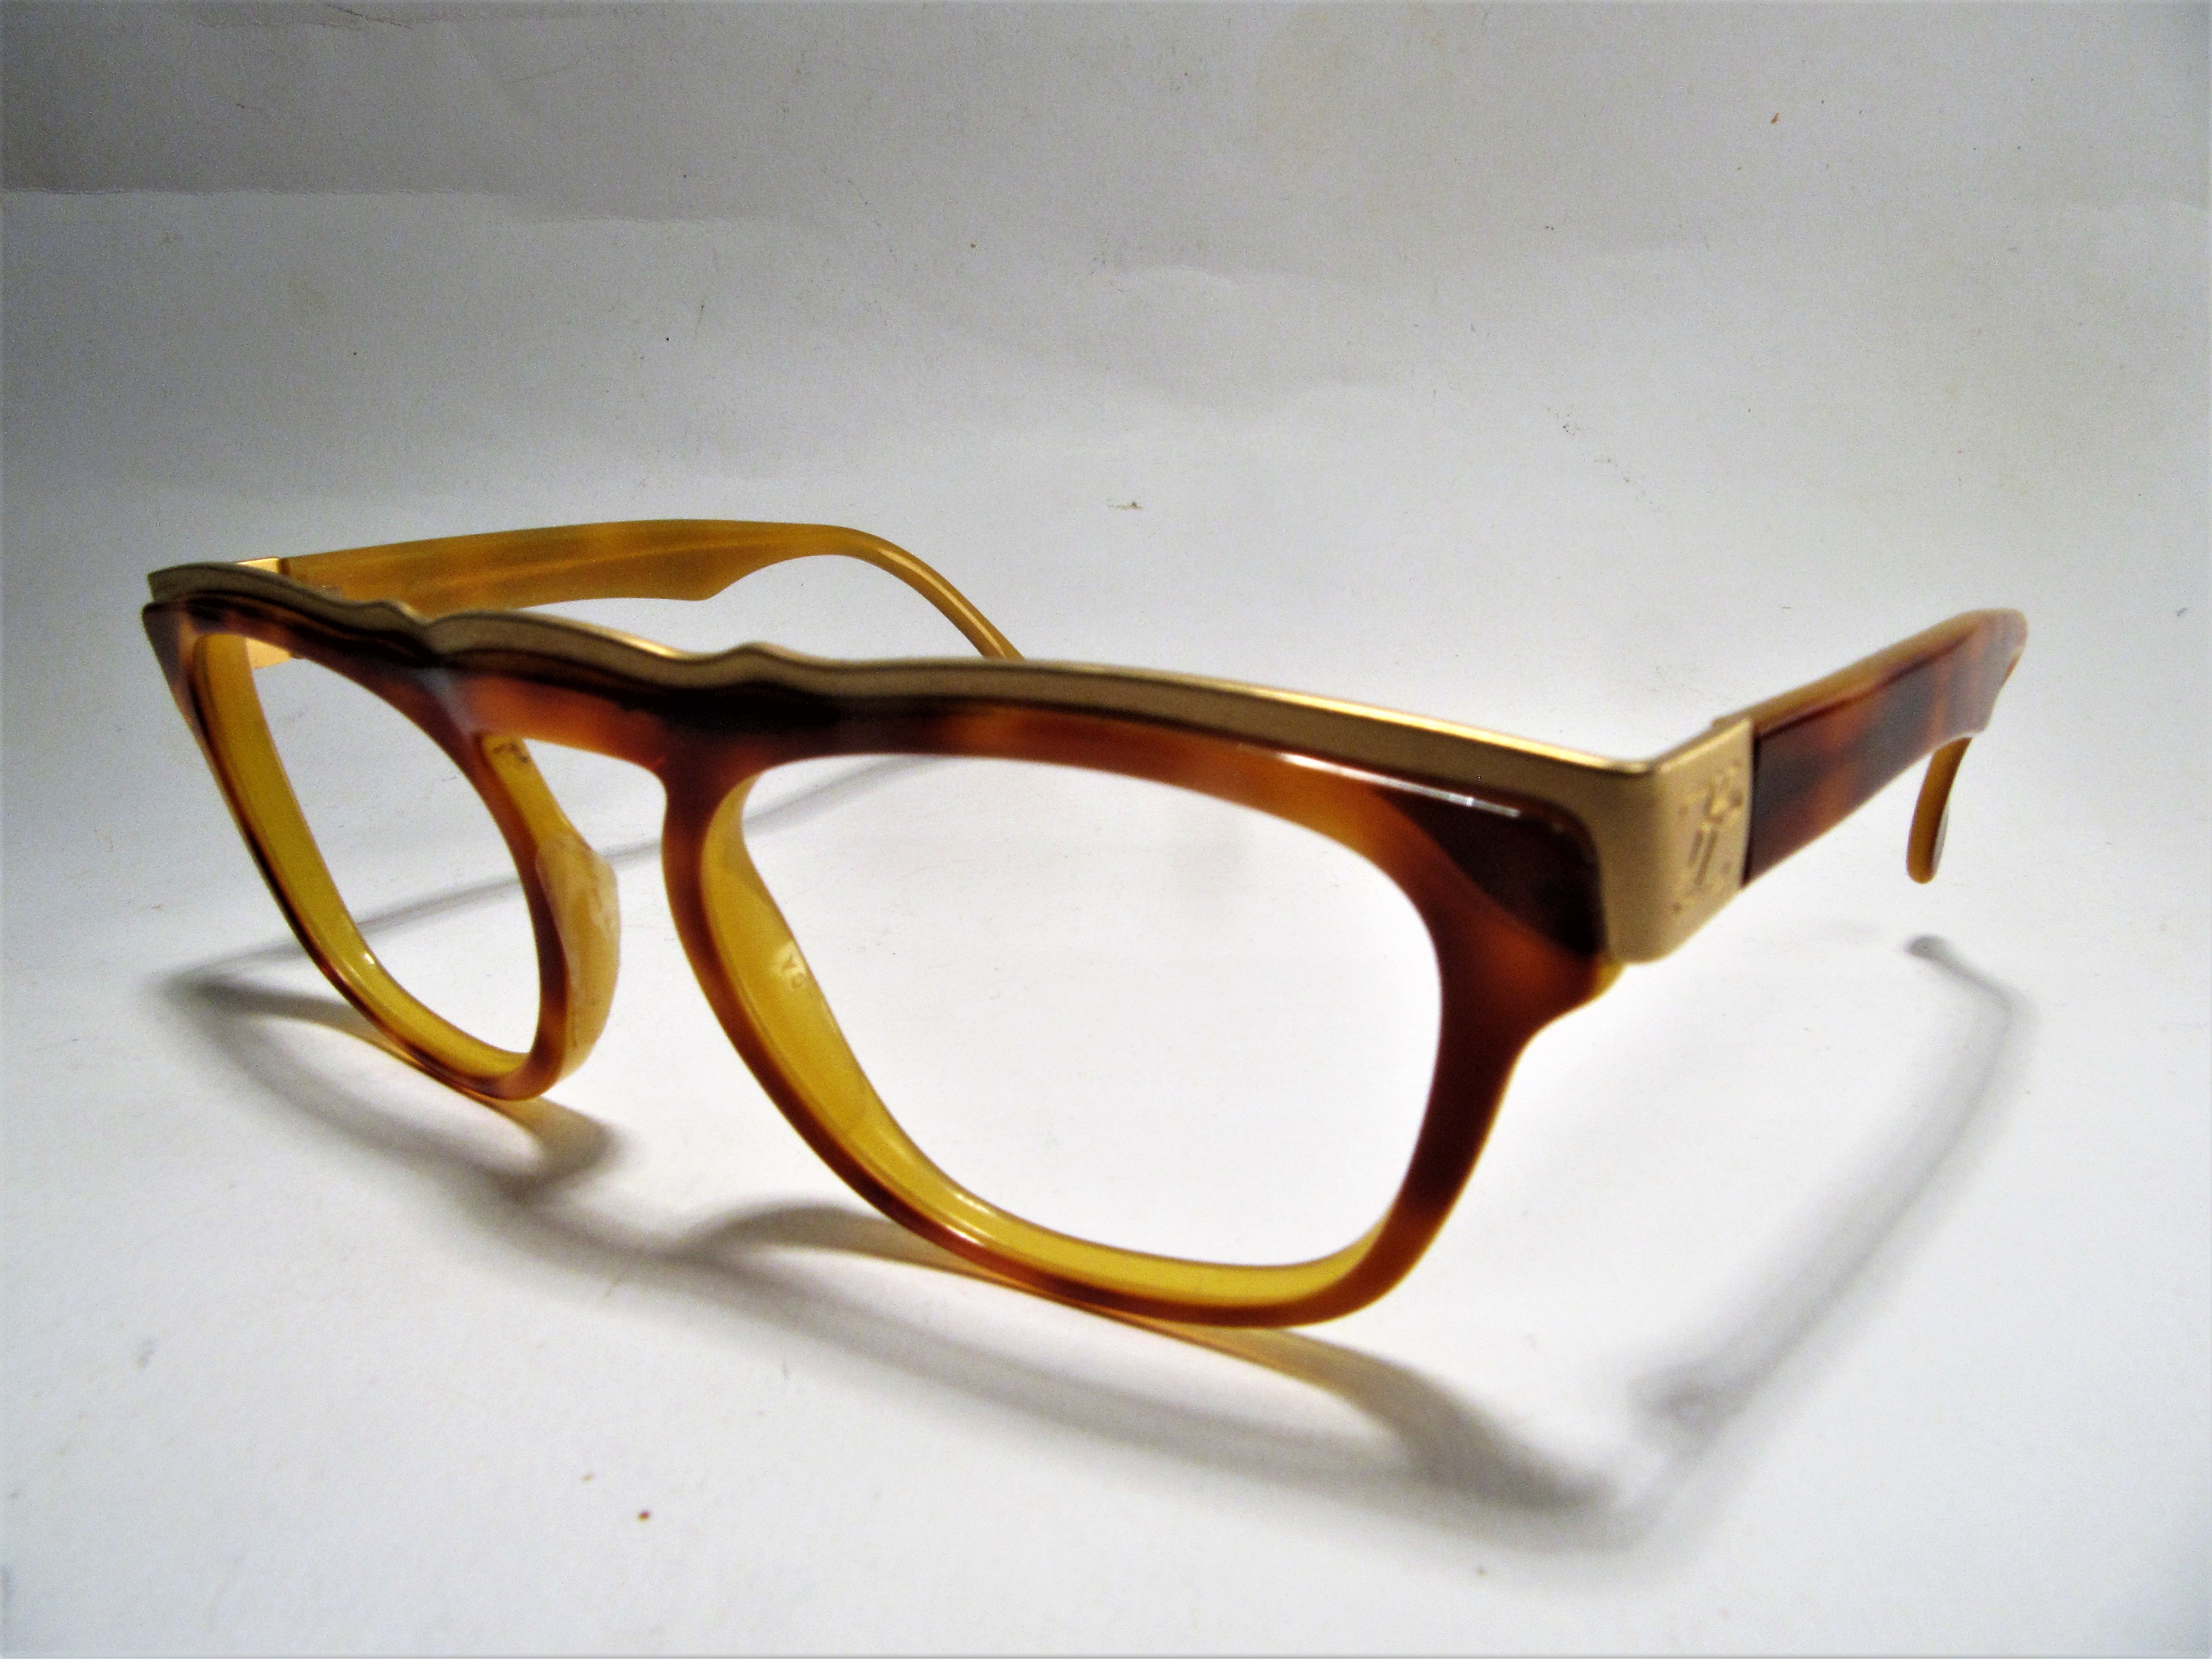 Karl Lagerfeld 1980s vintage eyeglasses frame havanna creme yellow with golden details